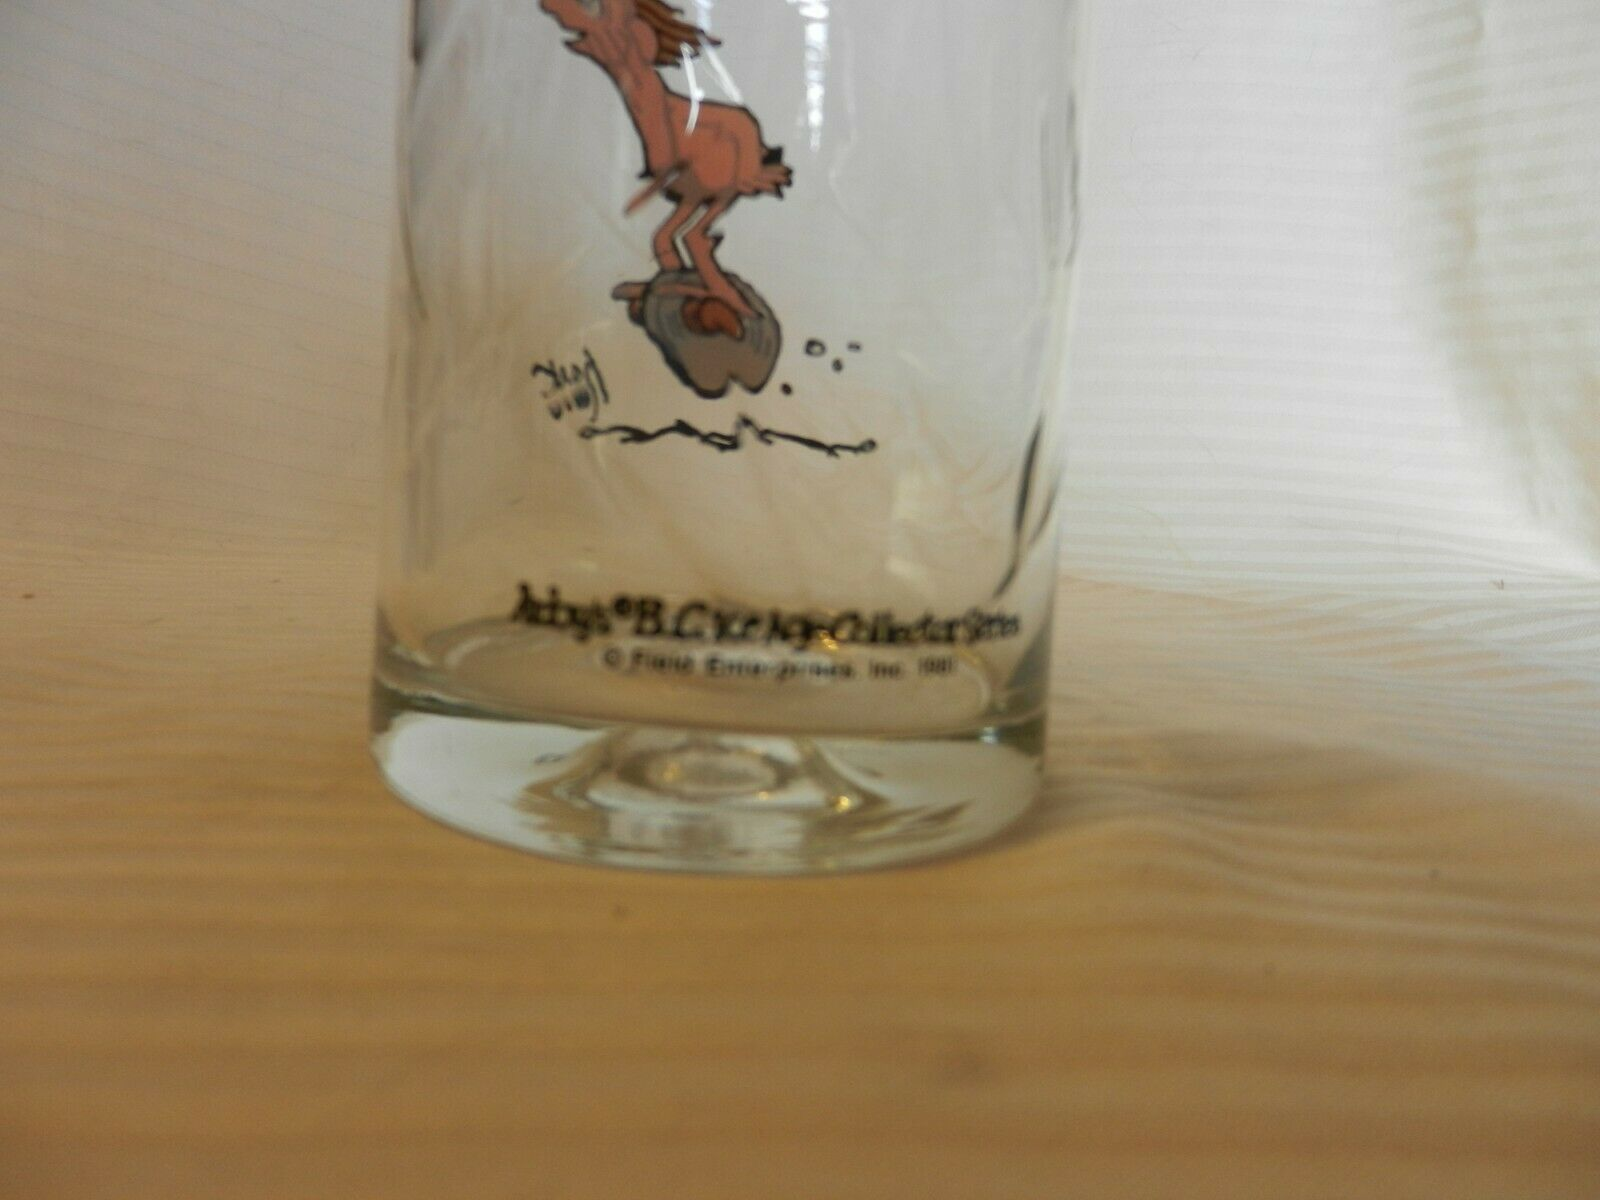 Arby's B.C. Comics Ice Age Collectible Glass Thor! Johnny Hart 1981